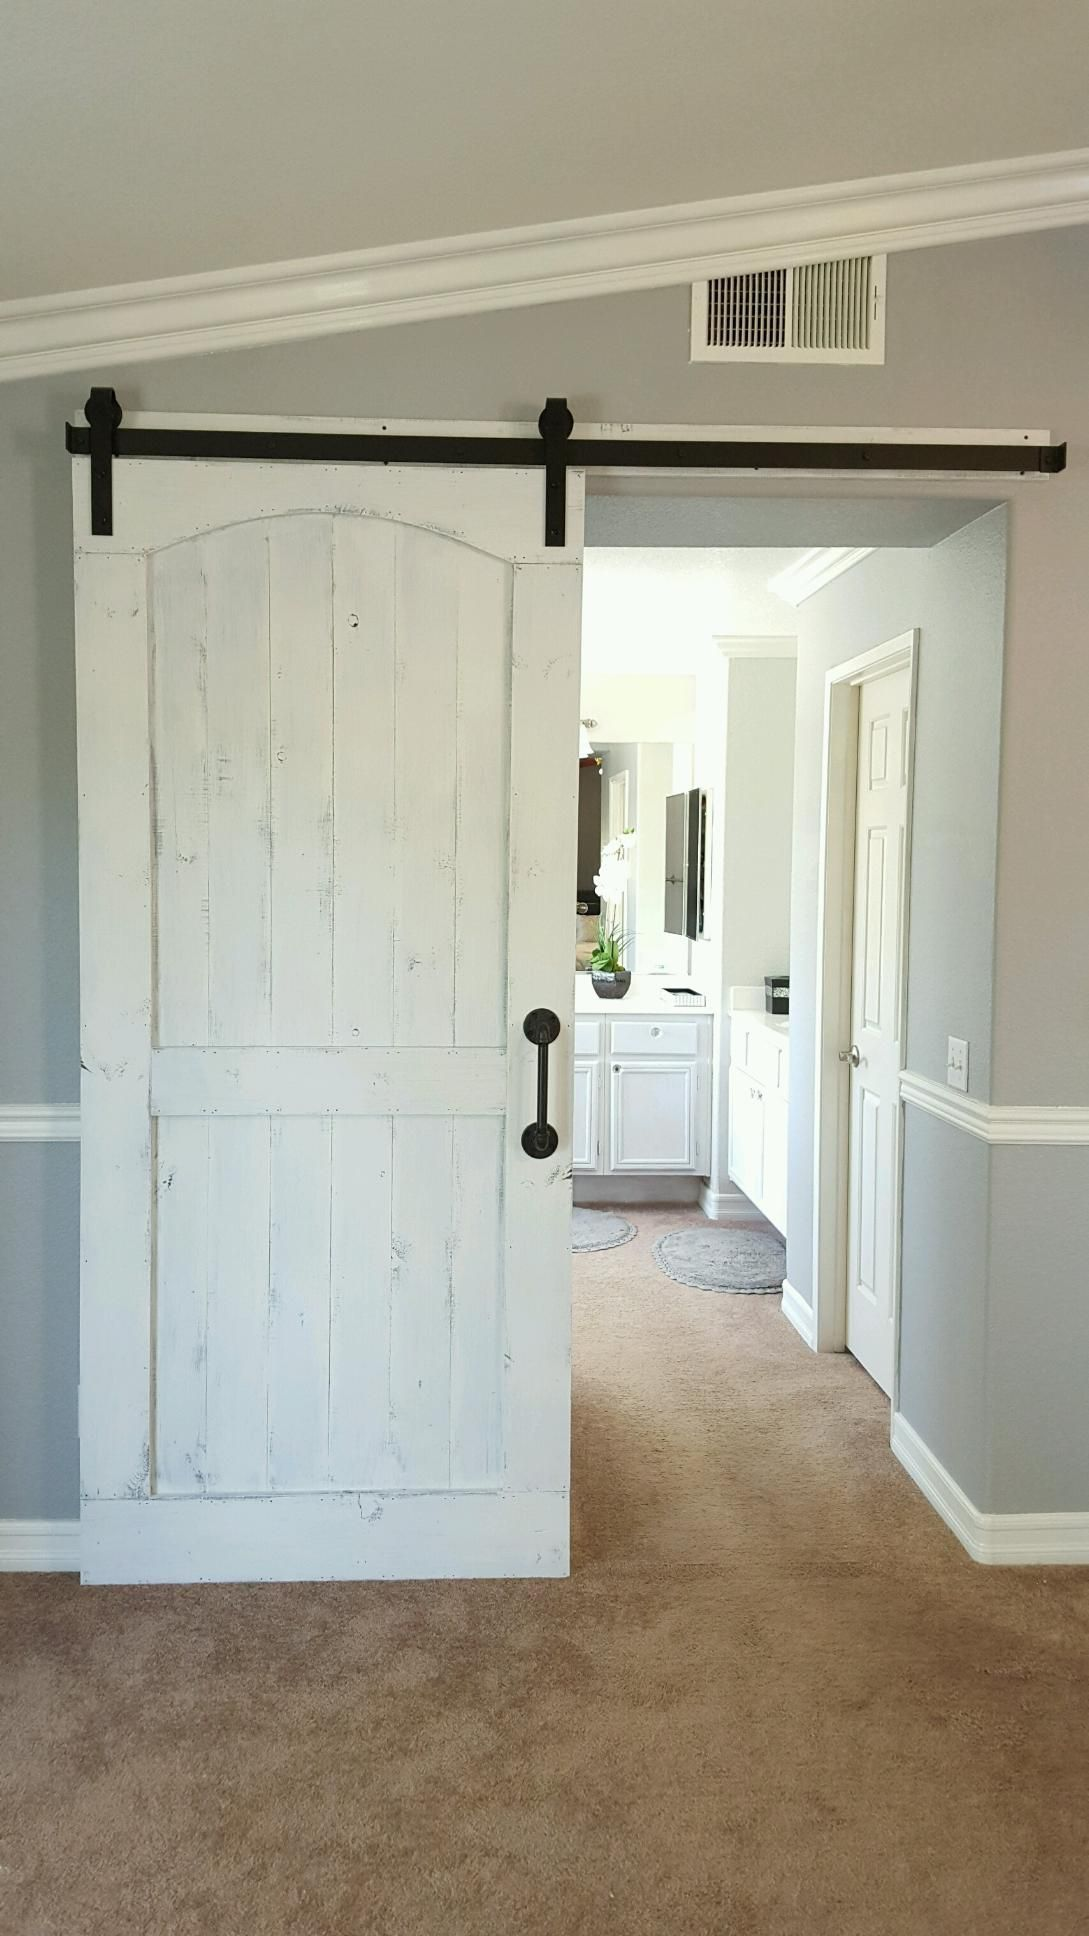 Distressed White Barn Door With Hardware For A Master